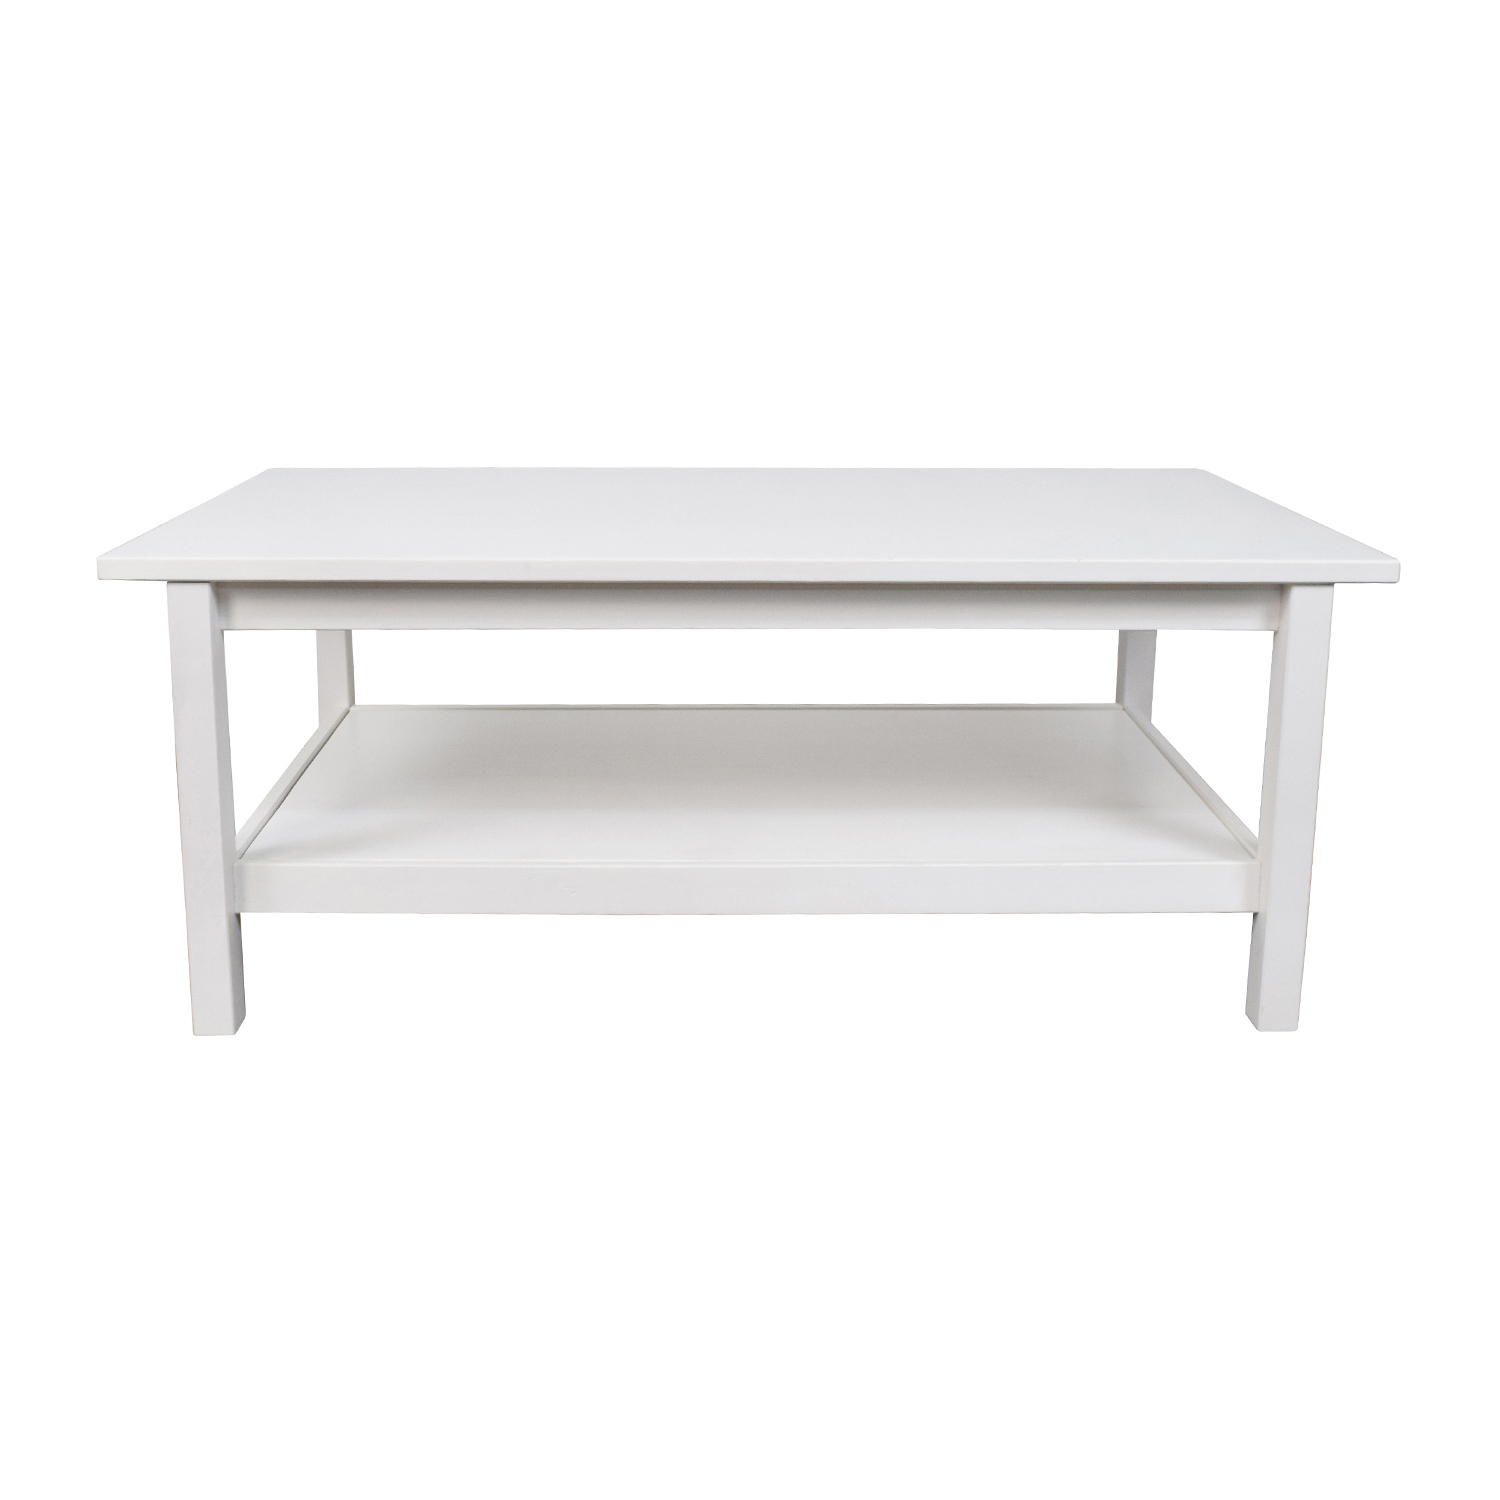 Coffee Table Ikea.27 Off Ikea Ikea Hemnes Coffee Table Tables